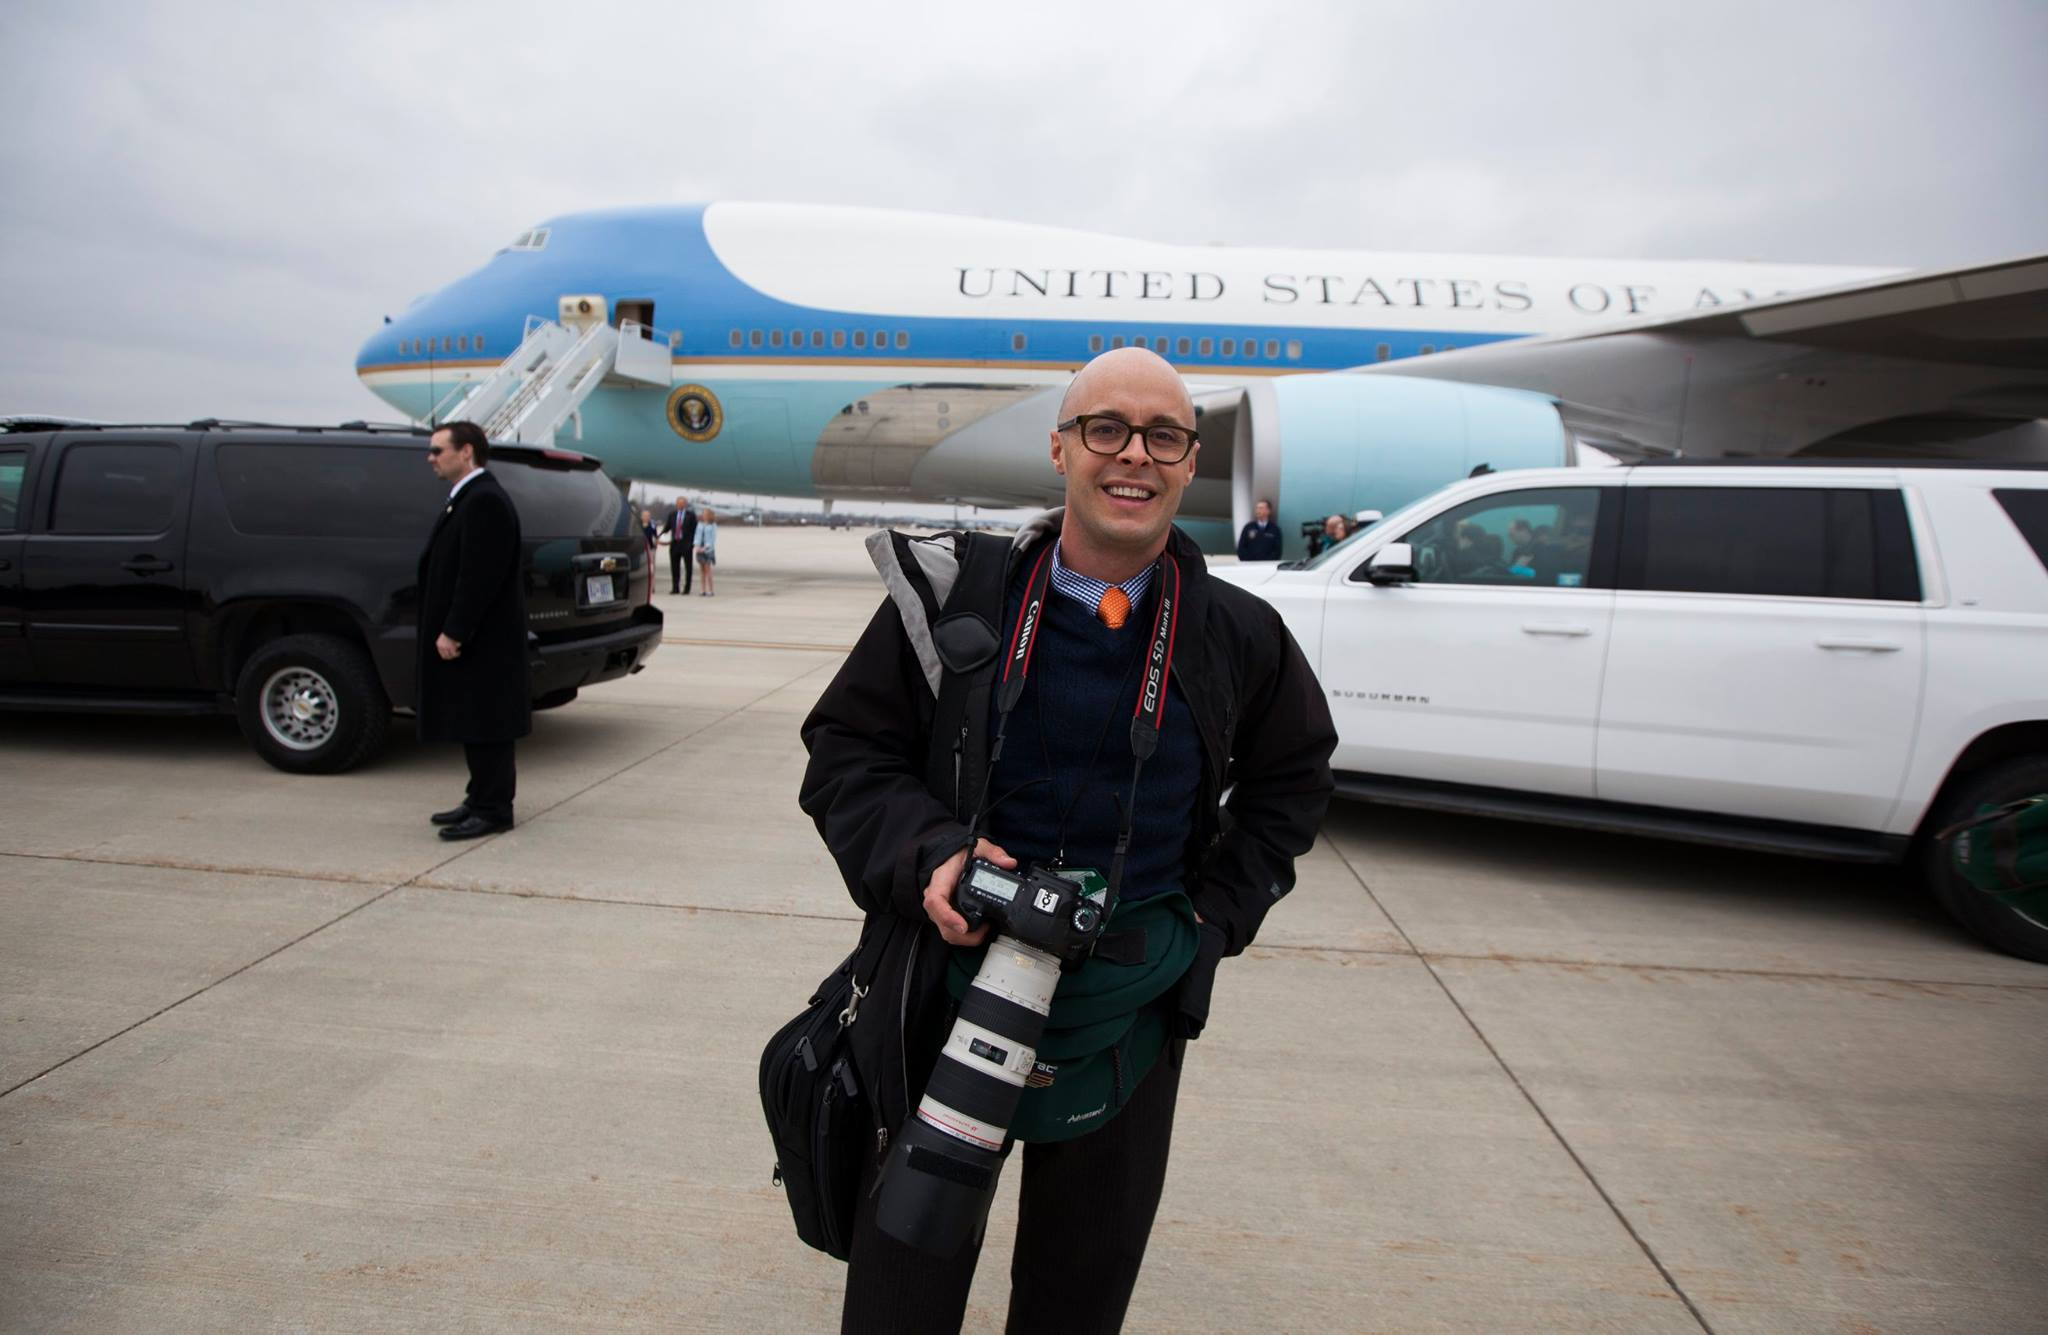 This is me (2015) in front of Air Force one after a day of Covering Obama's visit to Lawrence while embedded with the White House Press Corps. That's Secret service to the left. We're Tight.